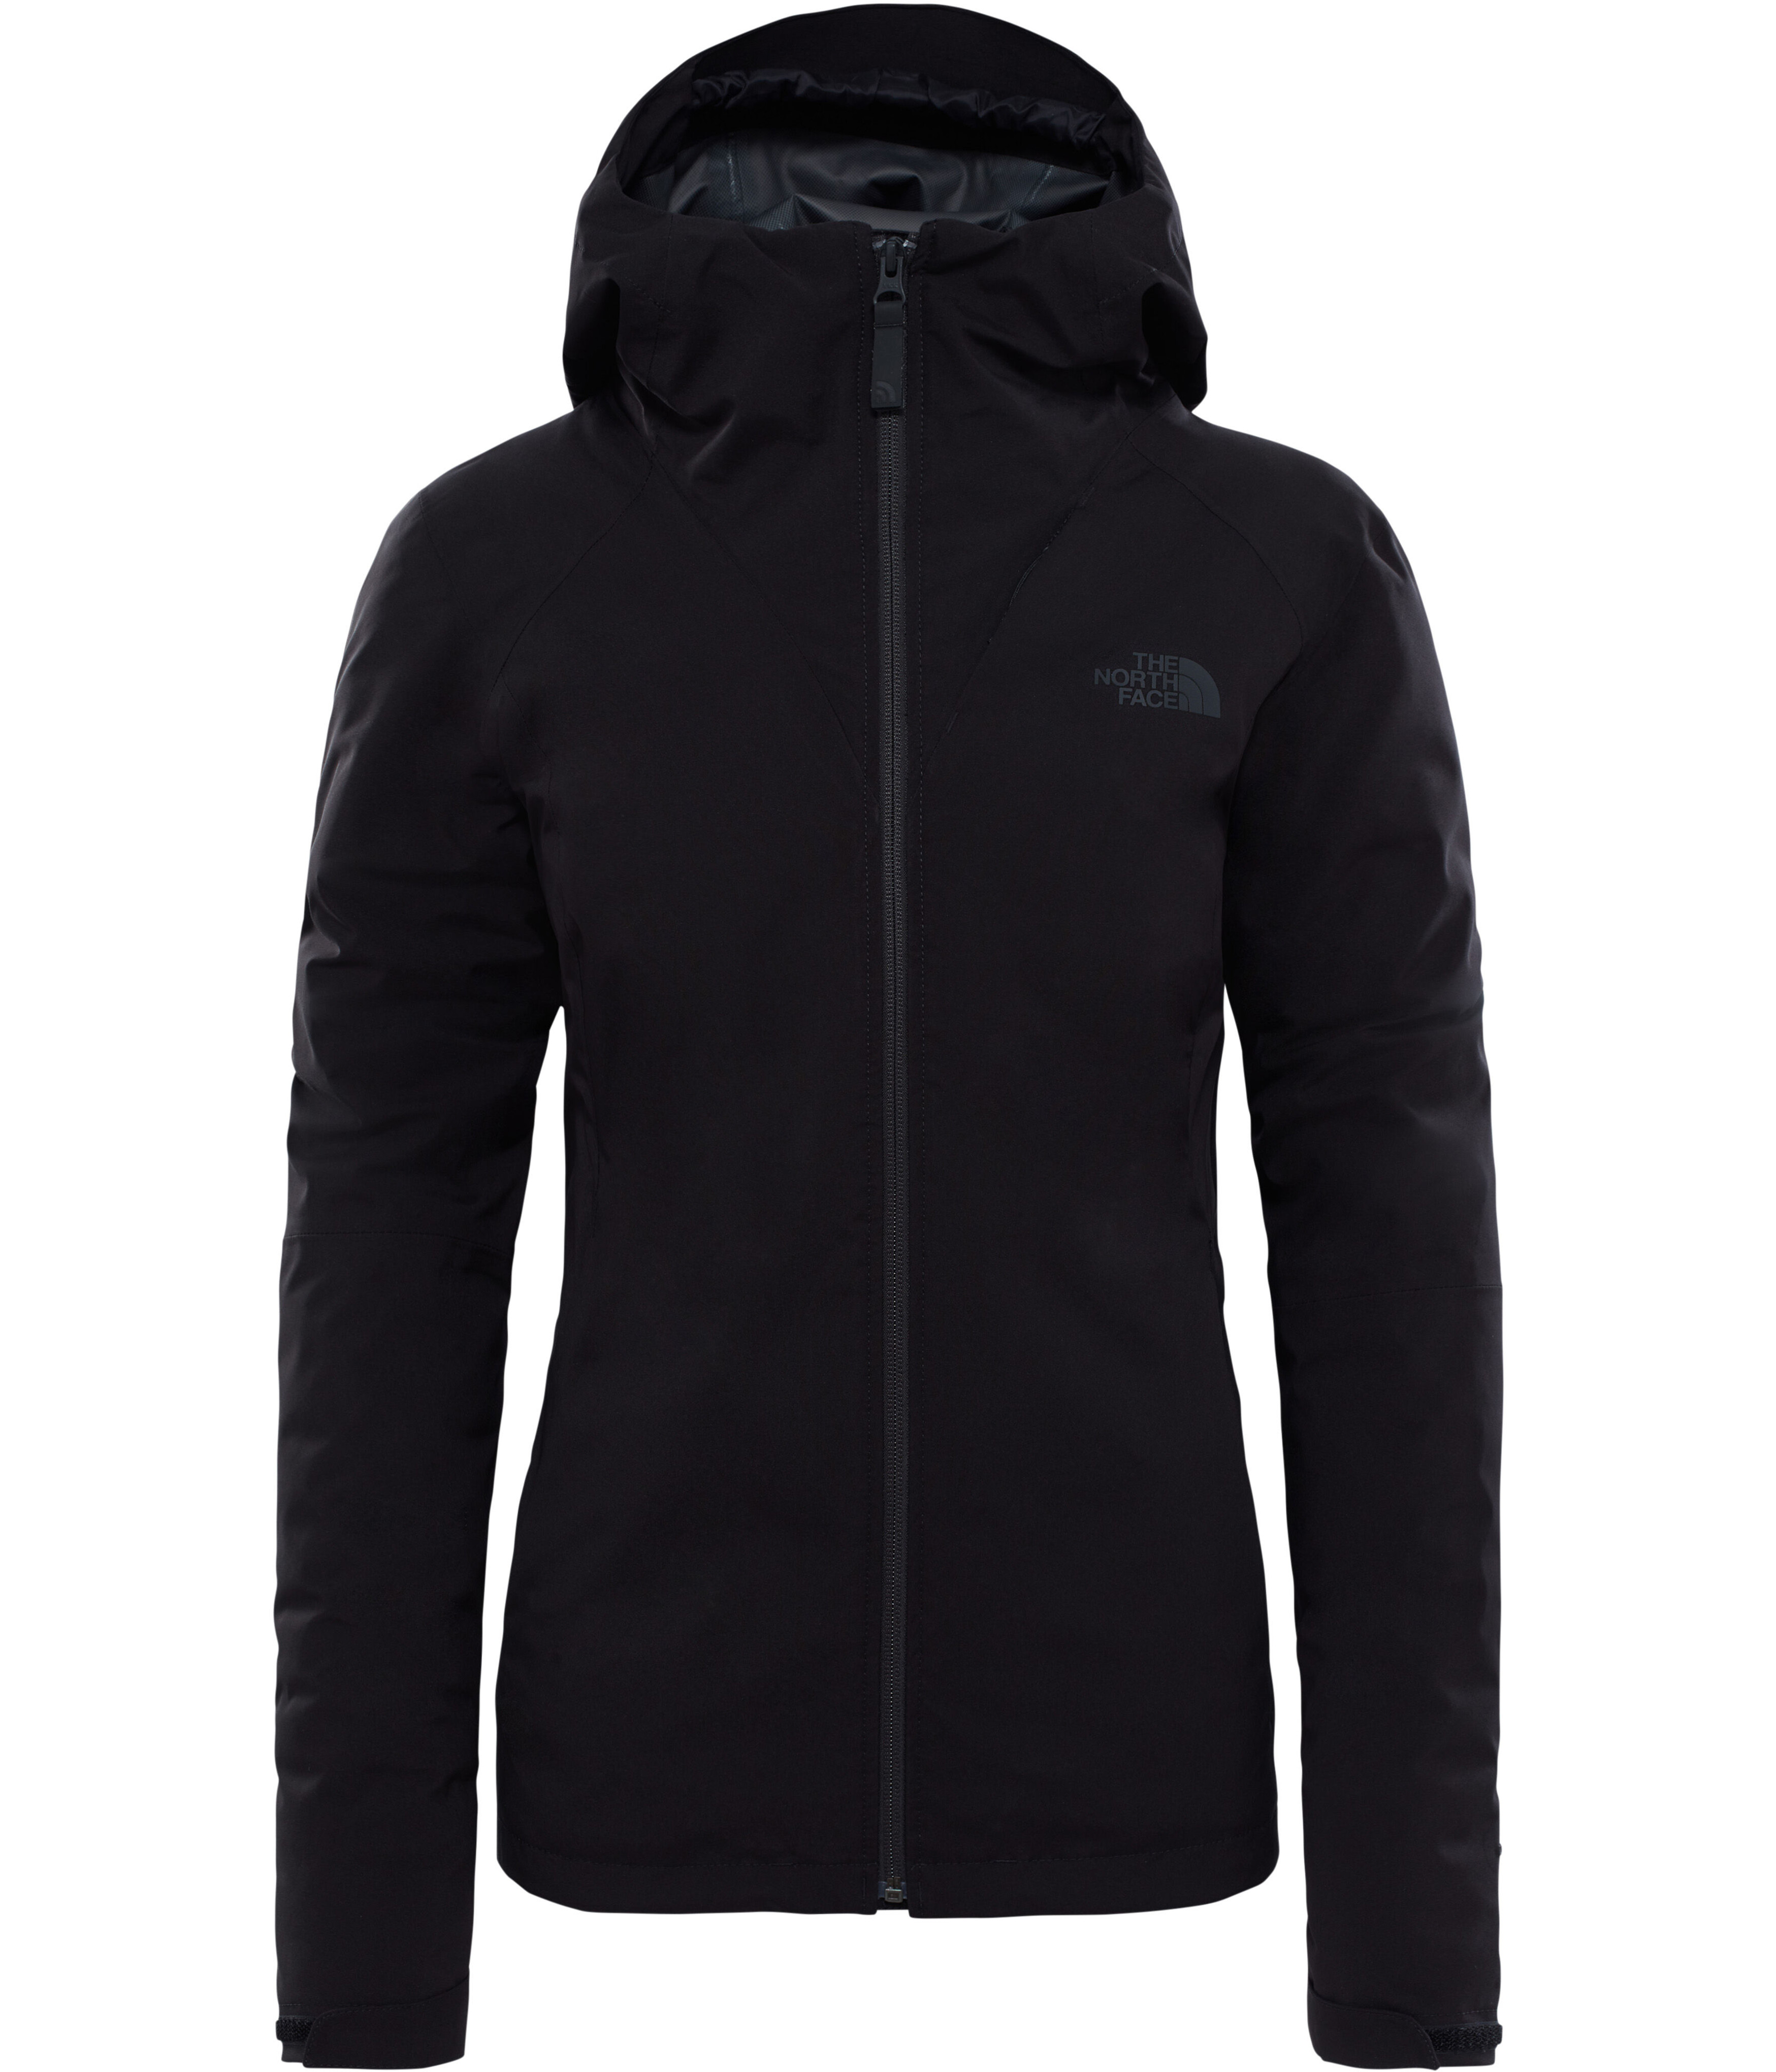 b2cfb129e9f The North Face Thermoball 3 1 Triclimate - Veste Femme - noir sur ...